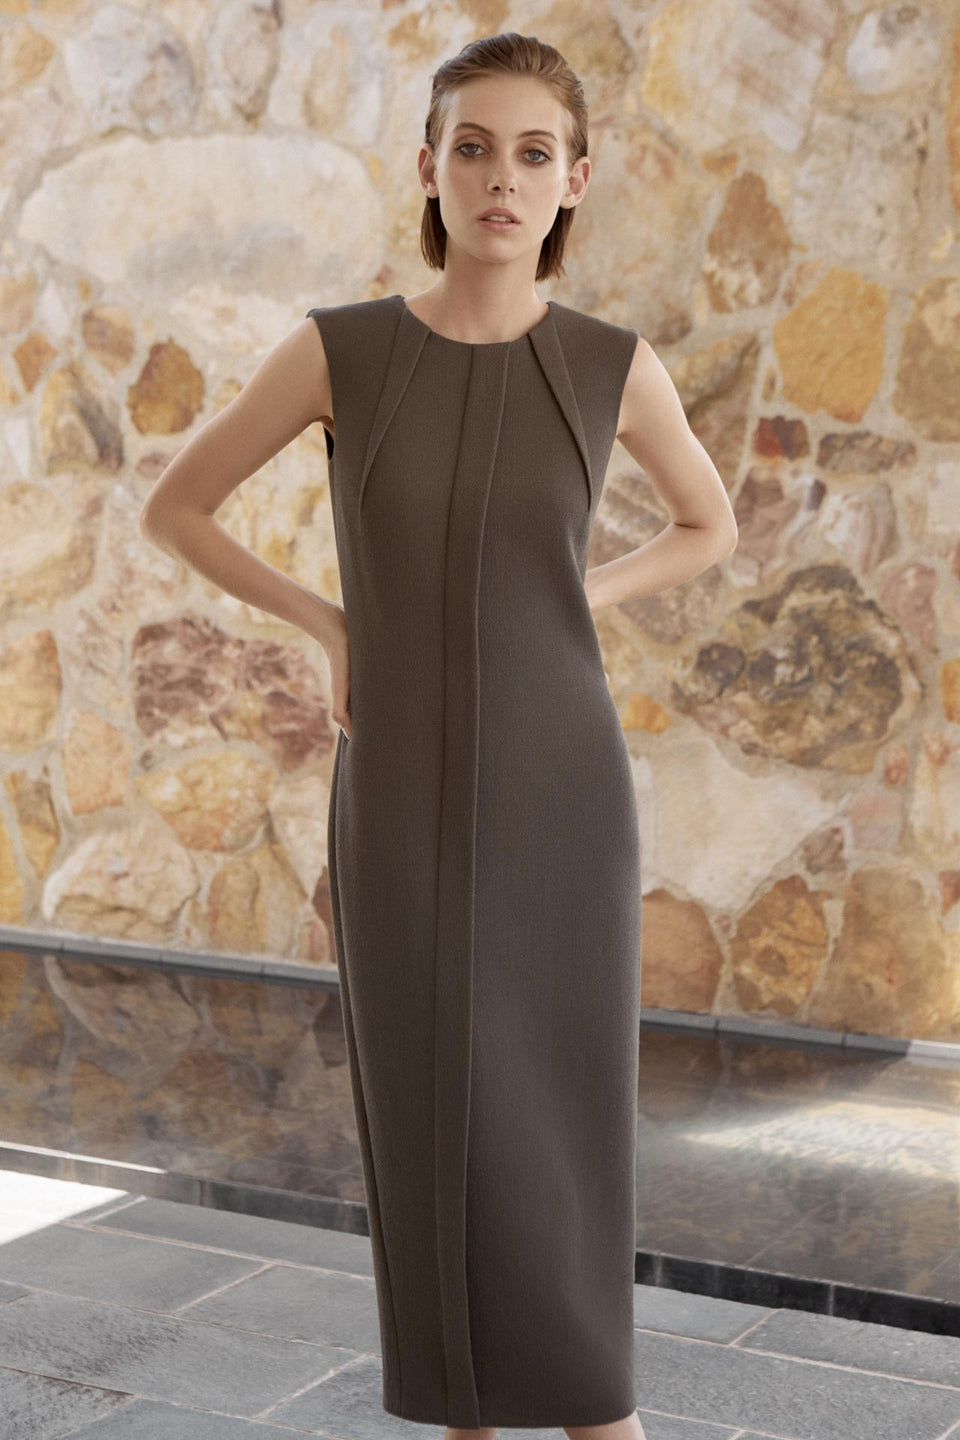 CARL KAPP AW2019 collection in Sydney Australia | Starling Wool Crepe Dress